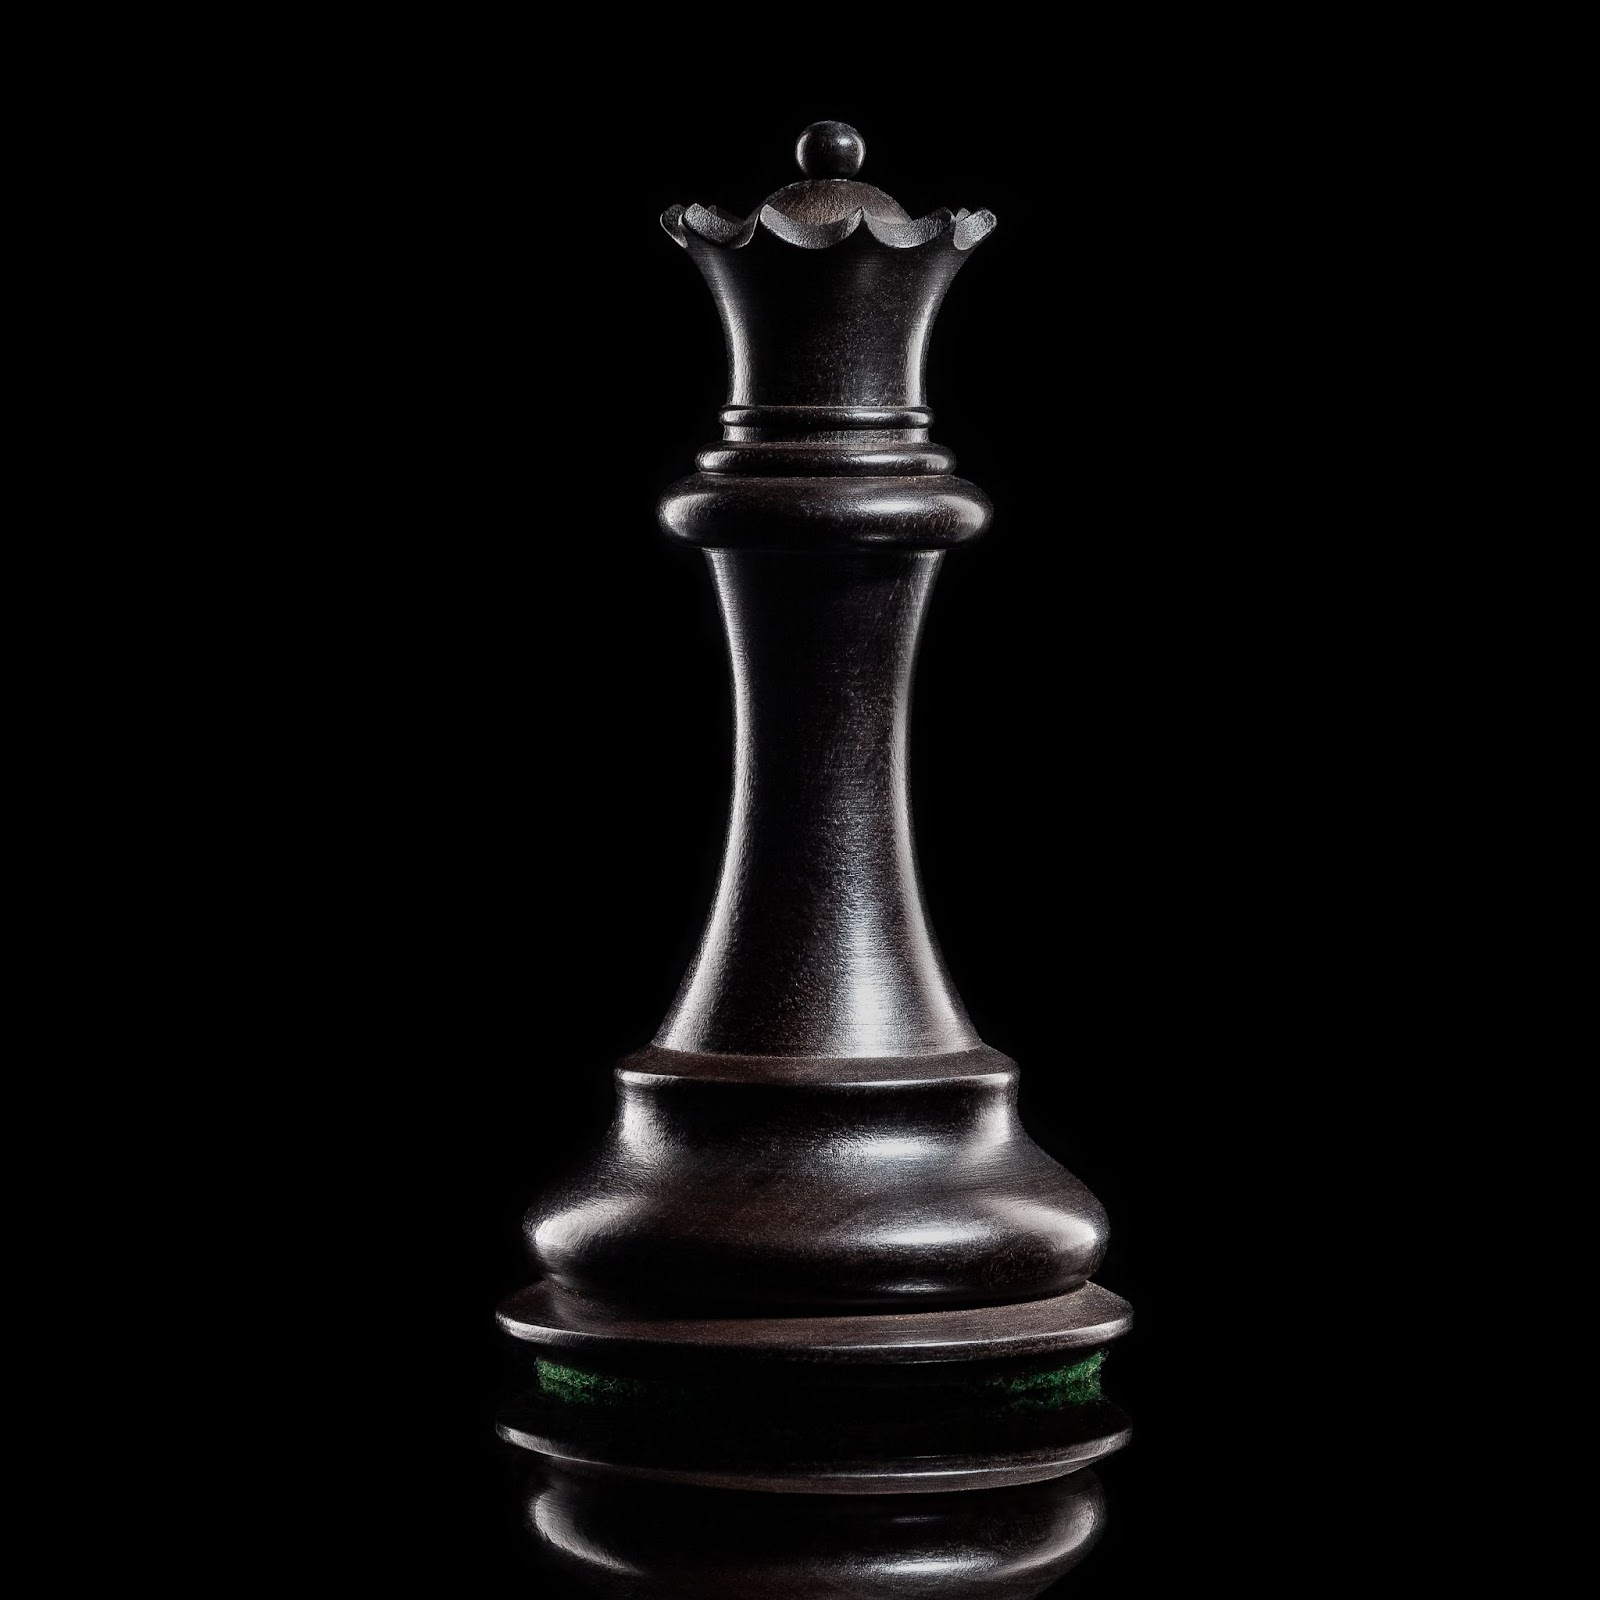 A picture of a chess piece, positioning in marketing is like a game of chess where you attempt to position your pieces better than your opponent.